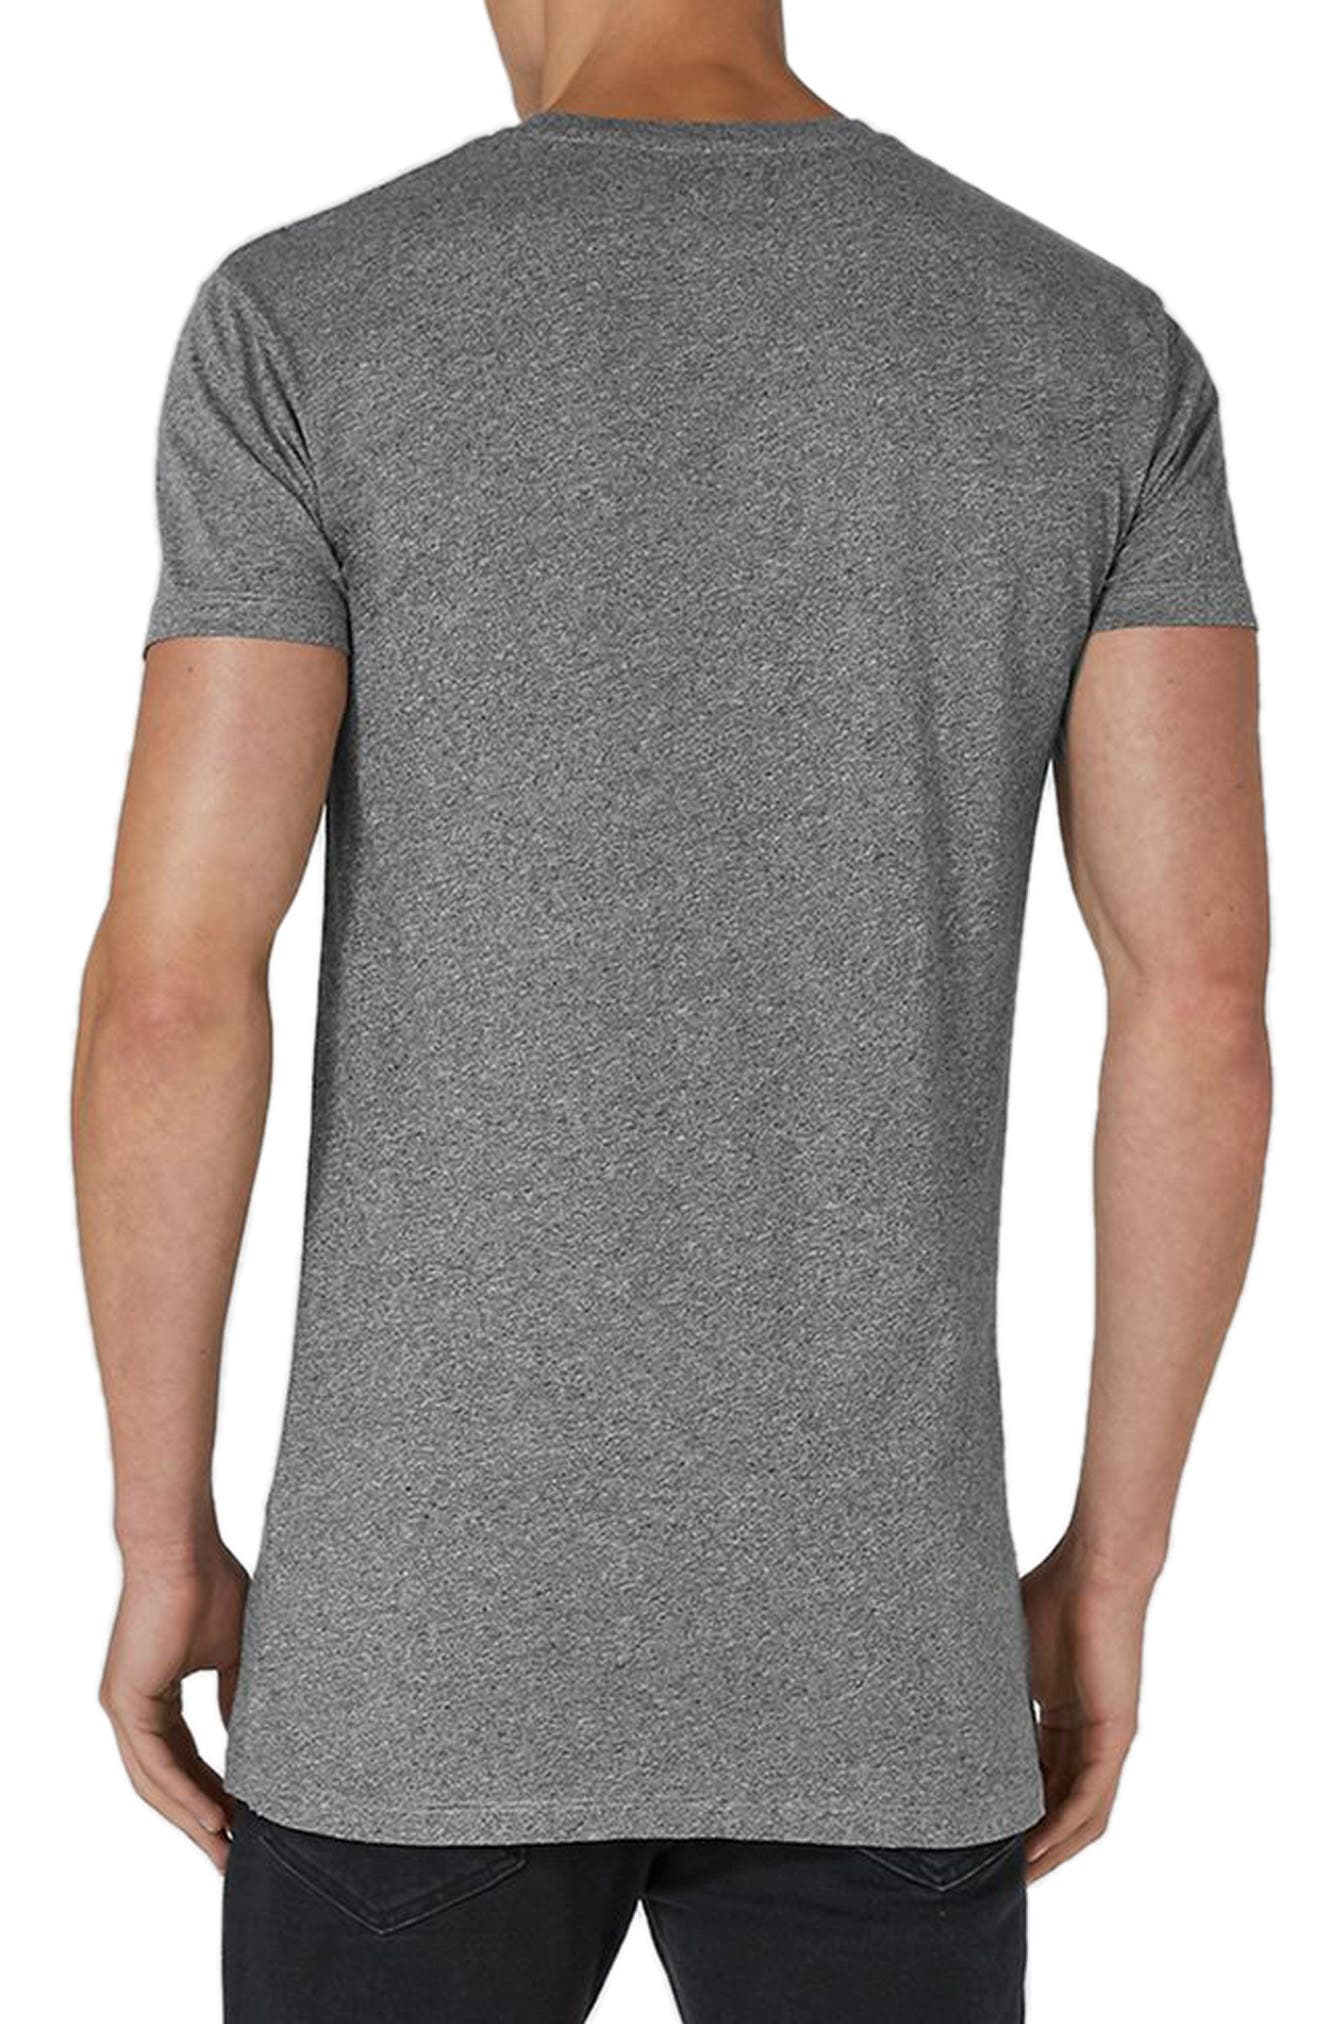 Muscle Fit Longline T-Shirt,                             Alternate thumbnail 2, color,                             020